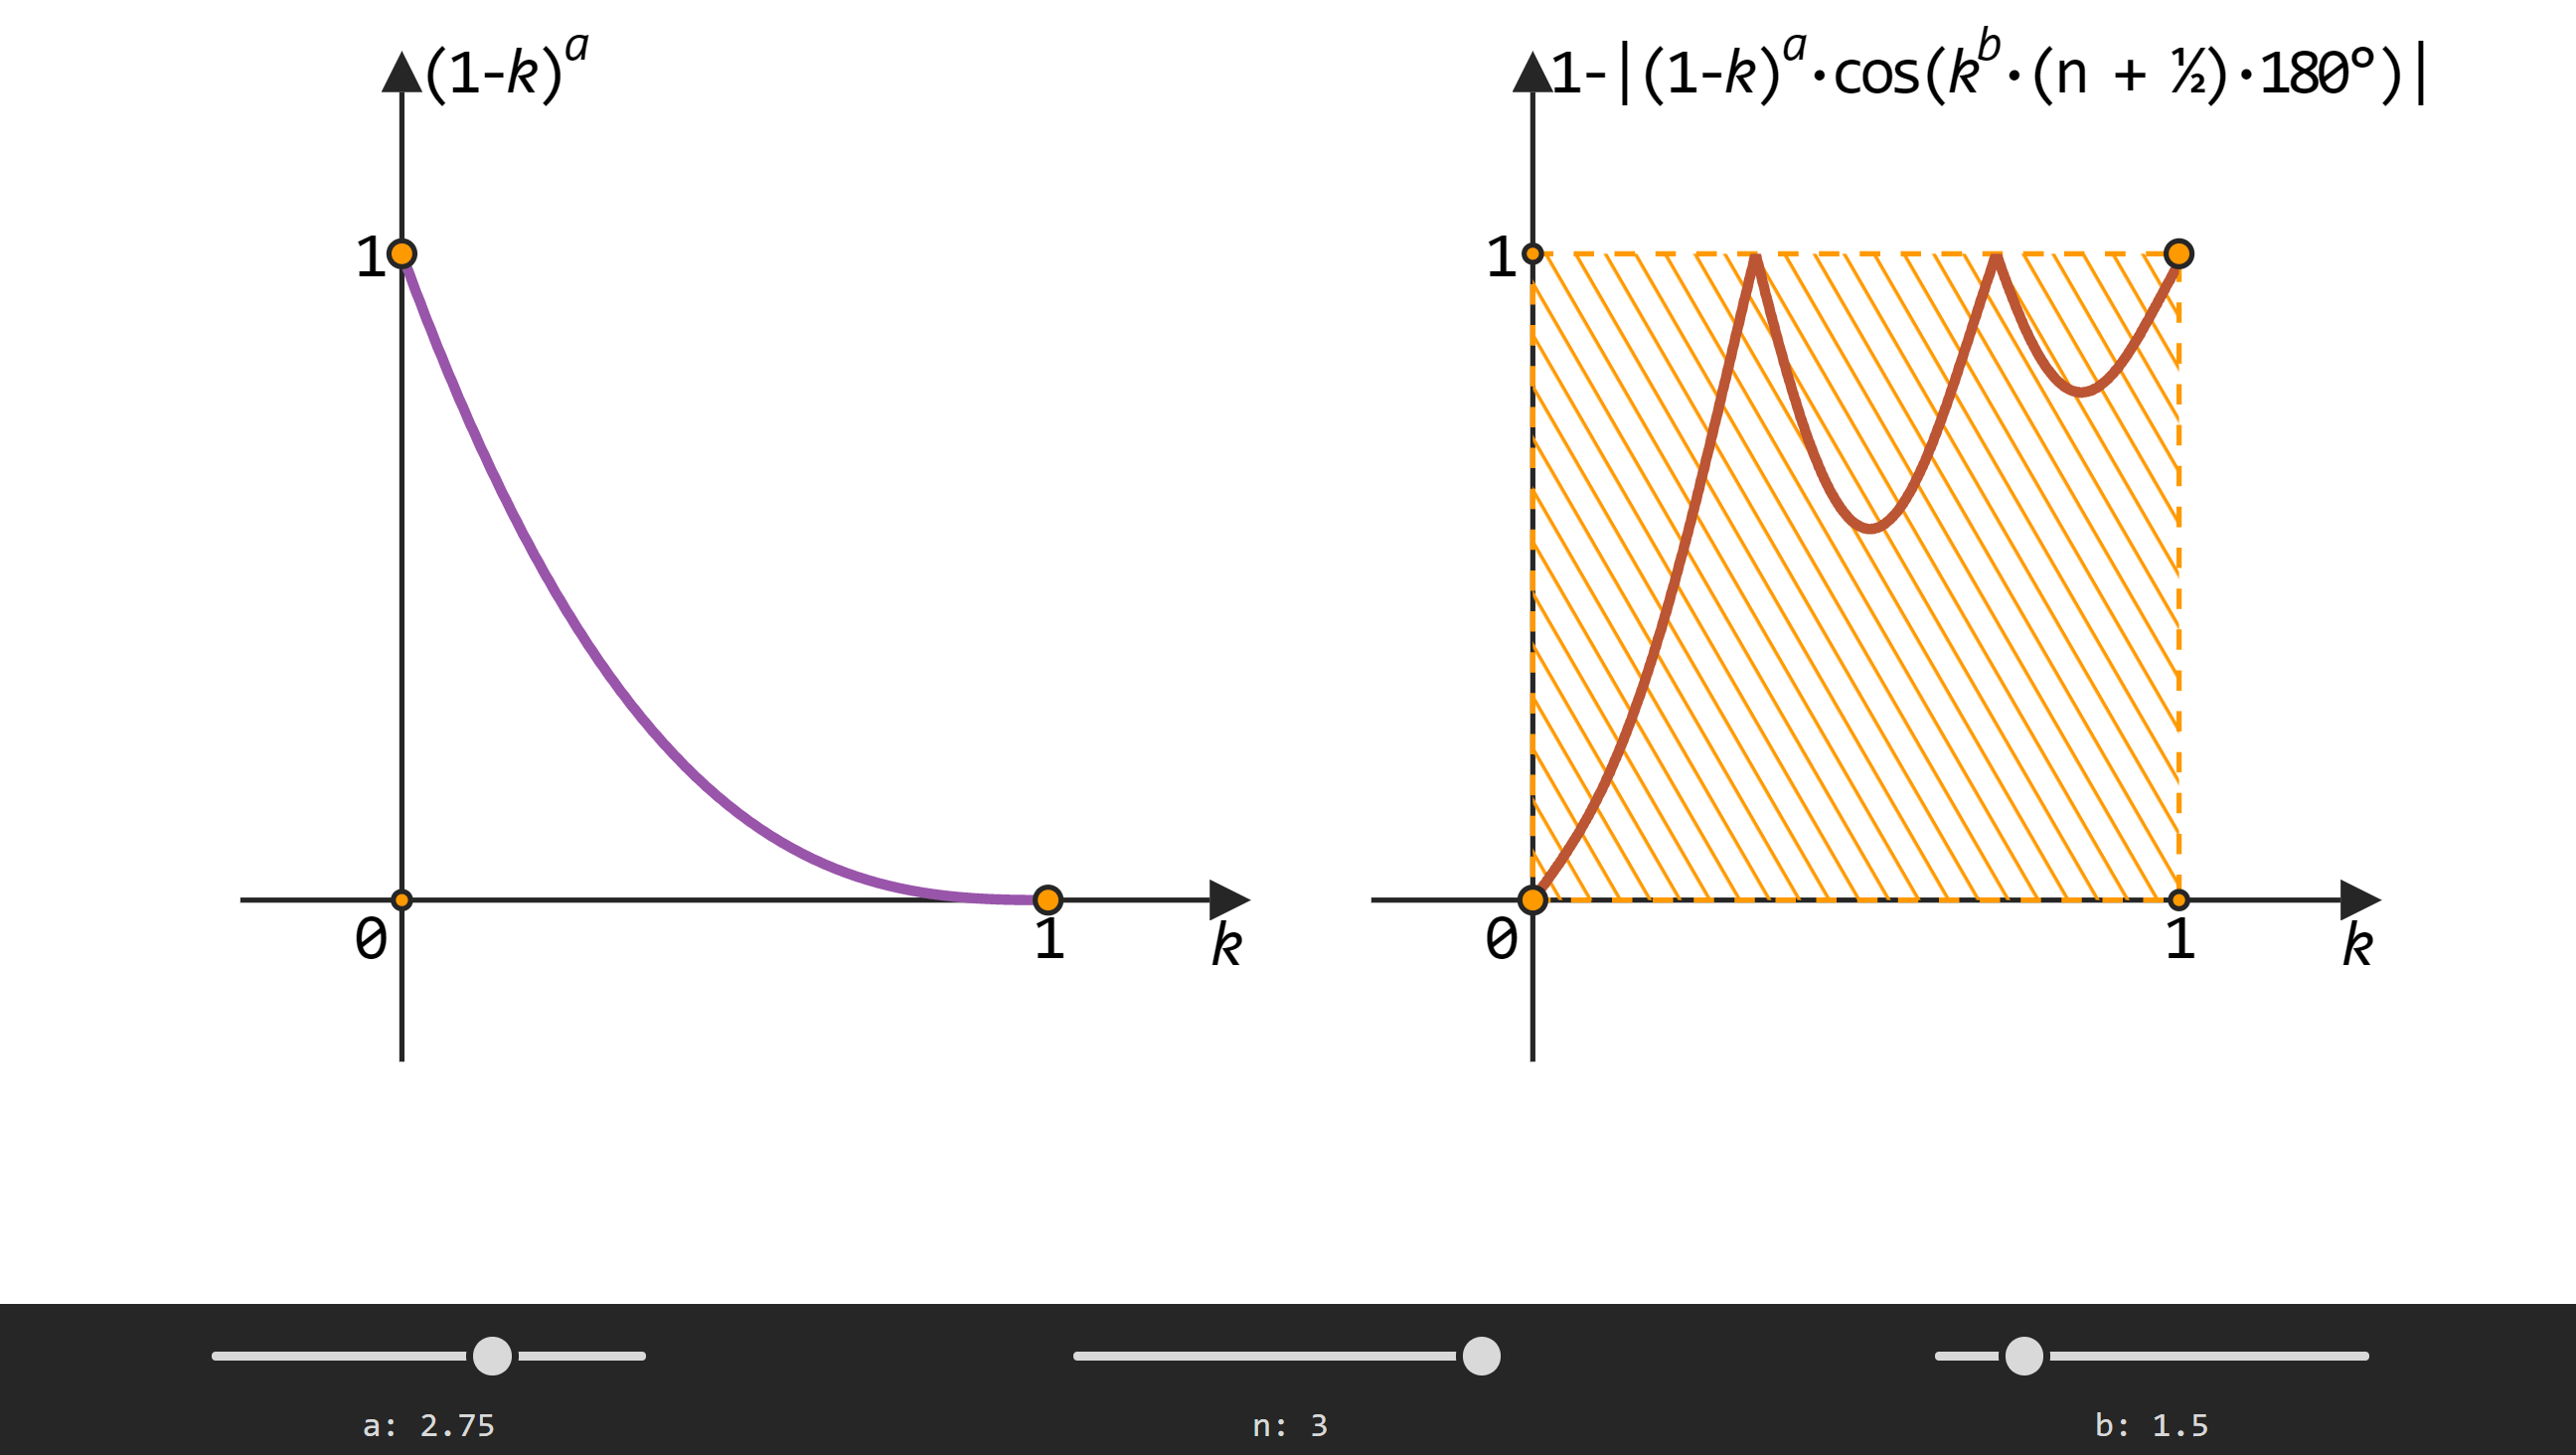 Screenshot of the previously linked demo showing the graphical result of the a = 2.75, n = 3 and b = 1.5 setup: a slow, then fast increase from 0 (for f(0)) to 1, bouncing back down less than half the way after reaching 1, going back up and then having another even smaller bounce before finishing at 1, where we always want to finish for f(1).